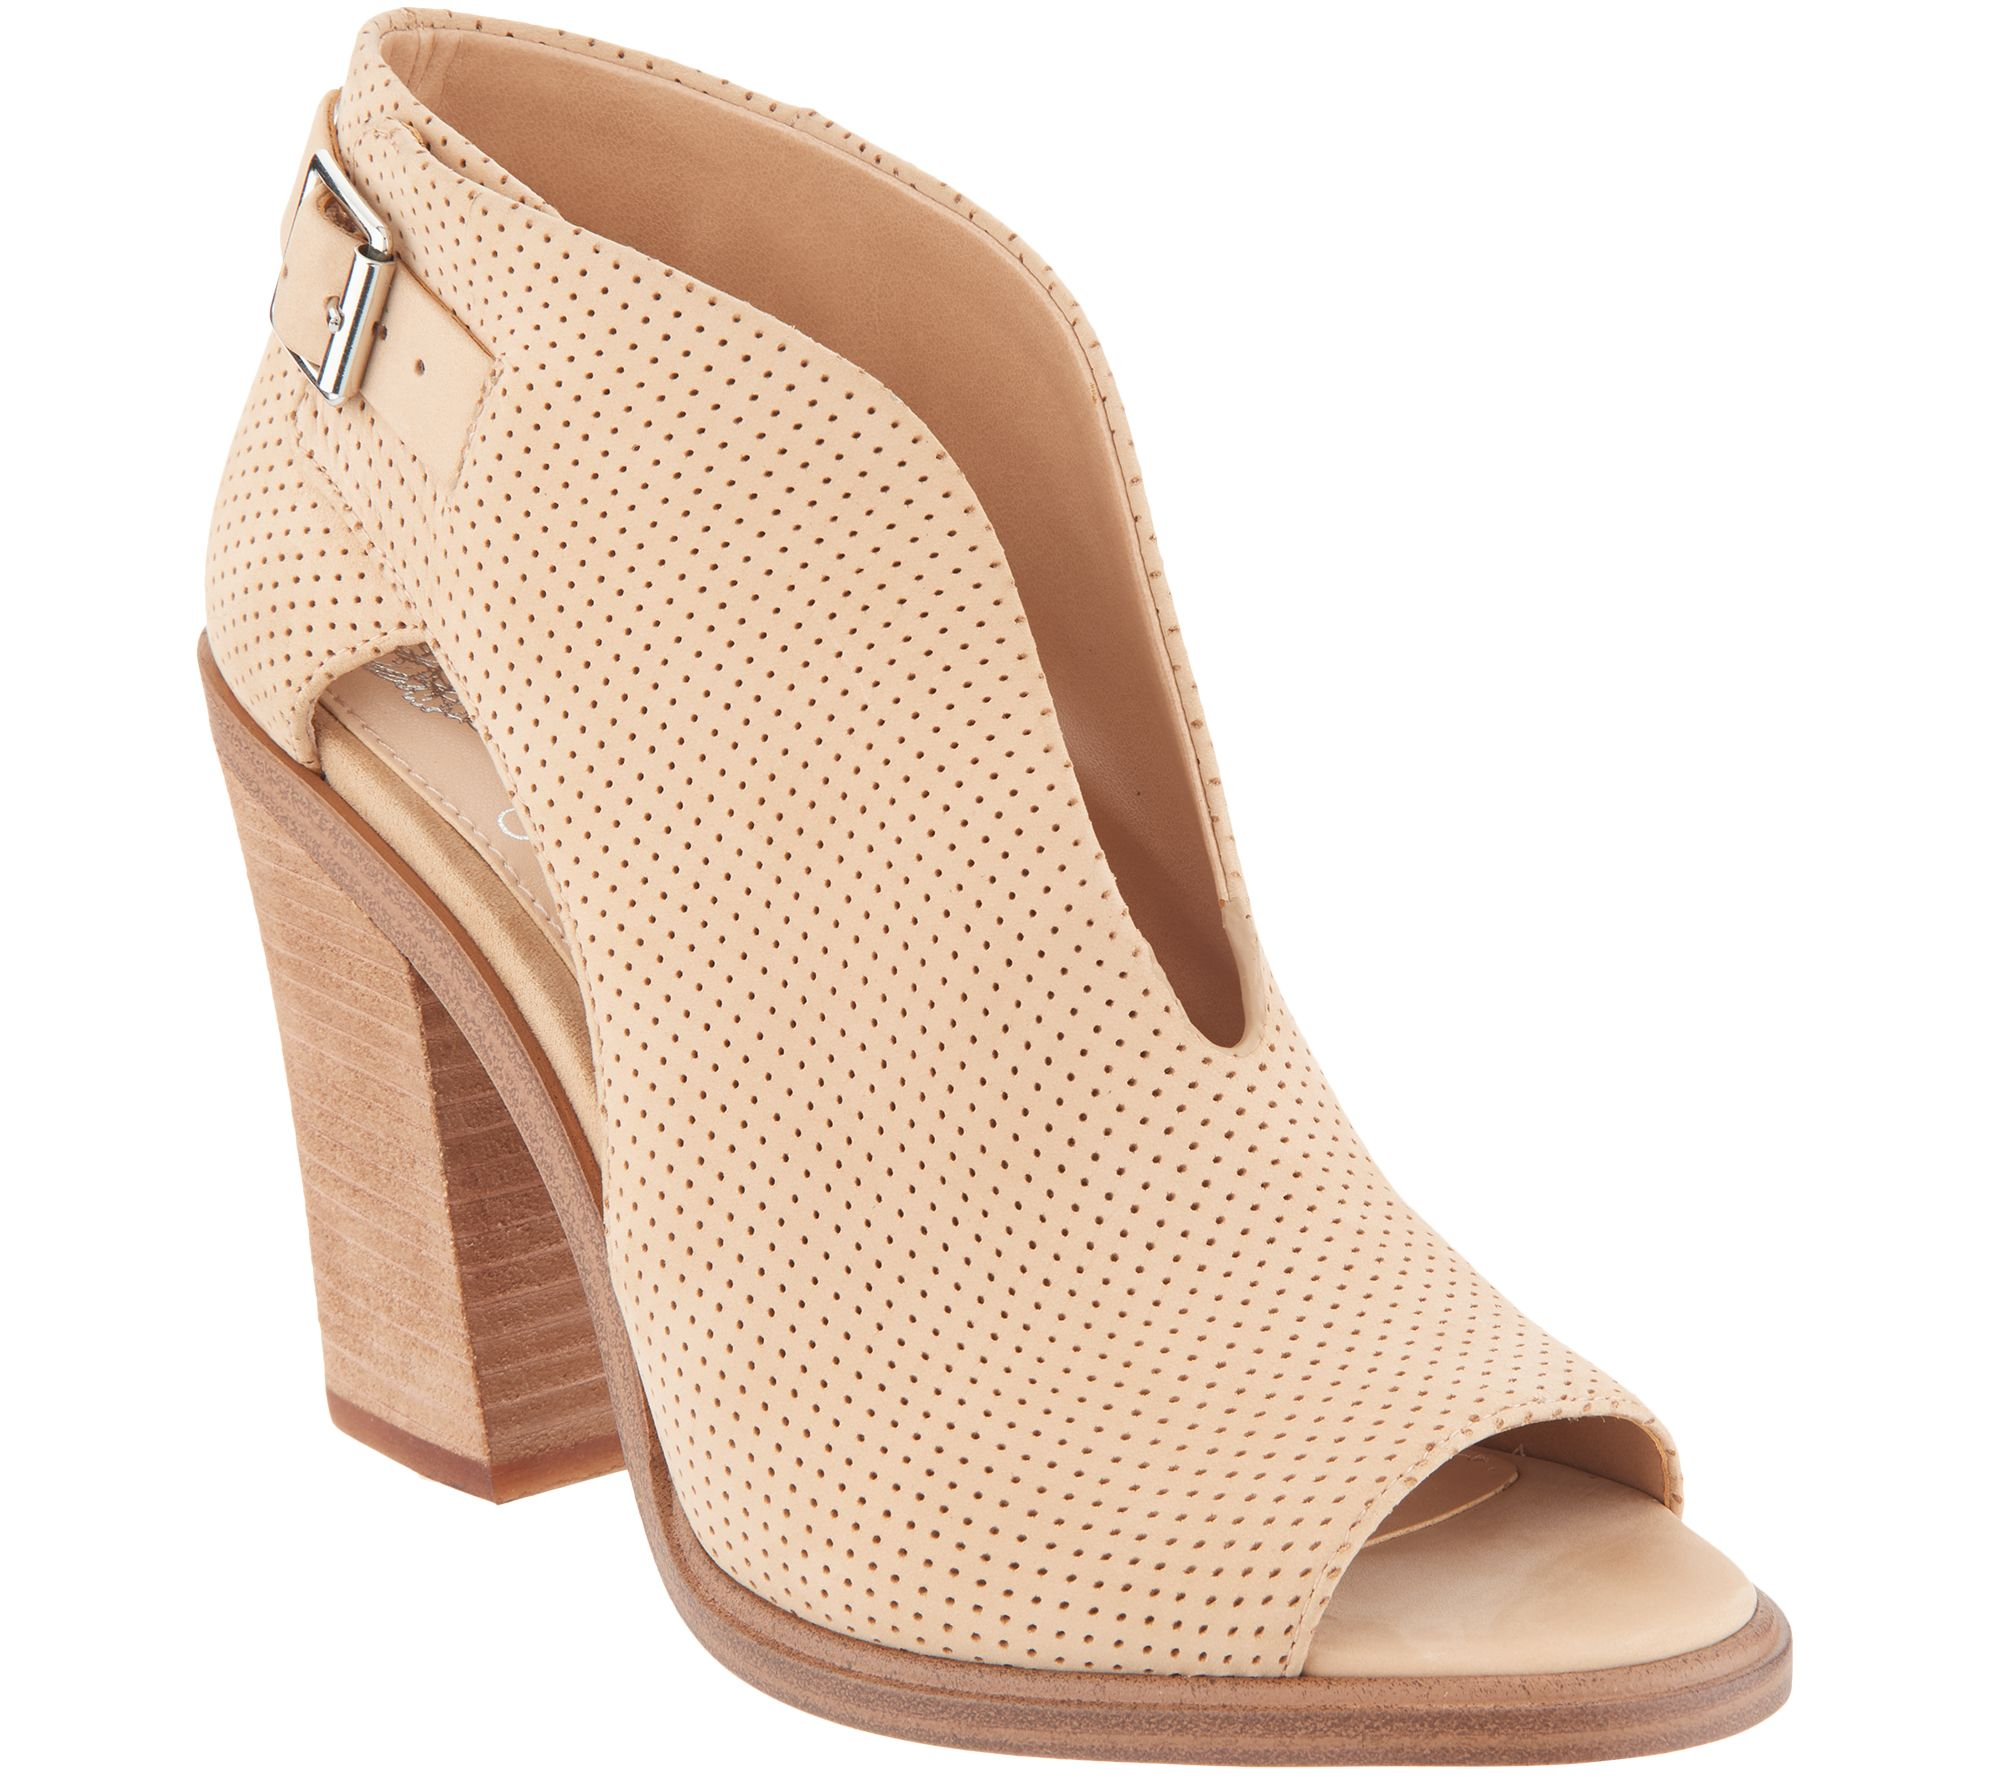 07ac190a7818a Vince Camuto Suede Front V-Cut Peep Toe Booties - Kalei - Page 1 — QVC.com